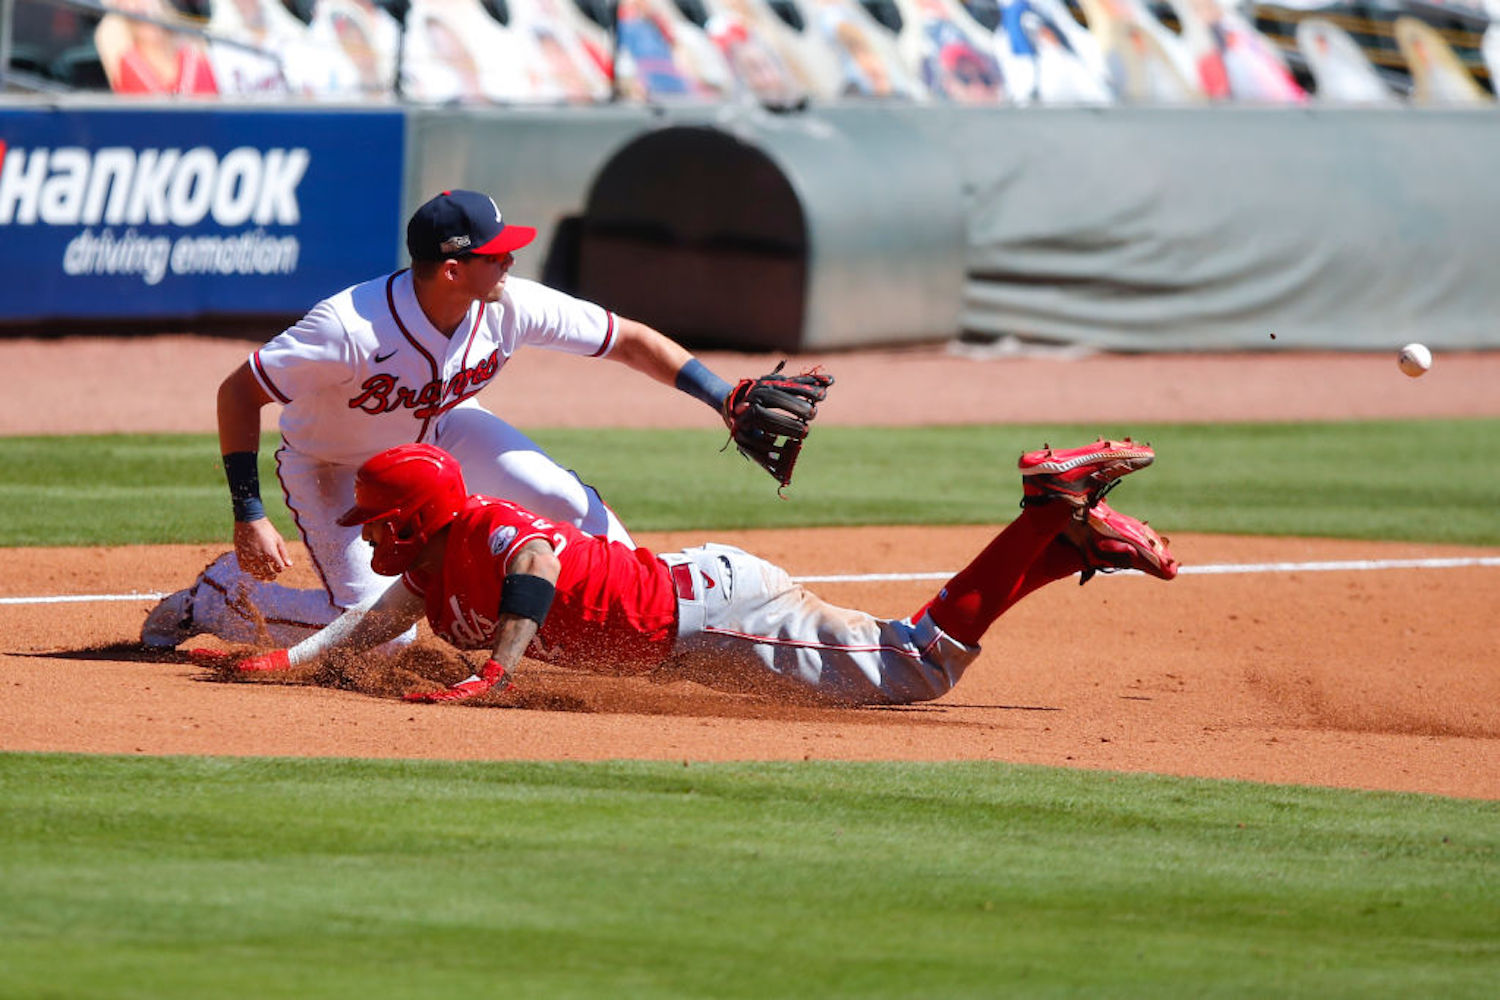 The Atlanta Braves and Cincinnati Reds just made MLB history with their extra-inning playoff game on Wednesday afternoon.